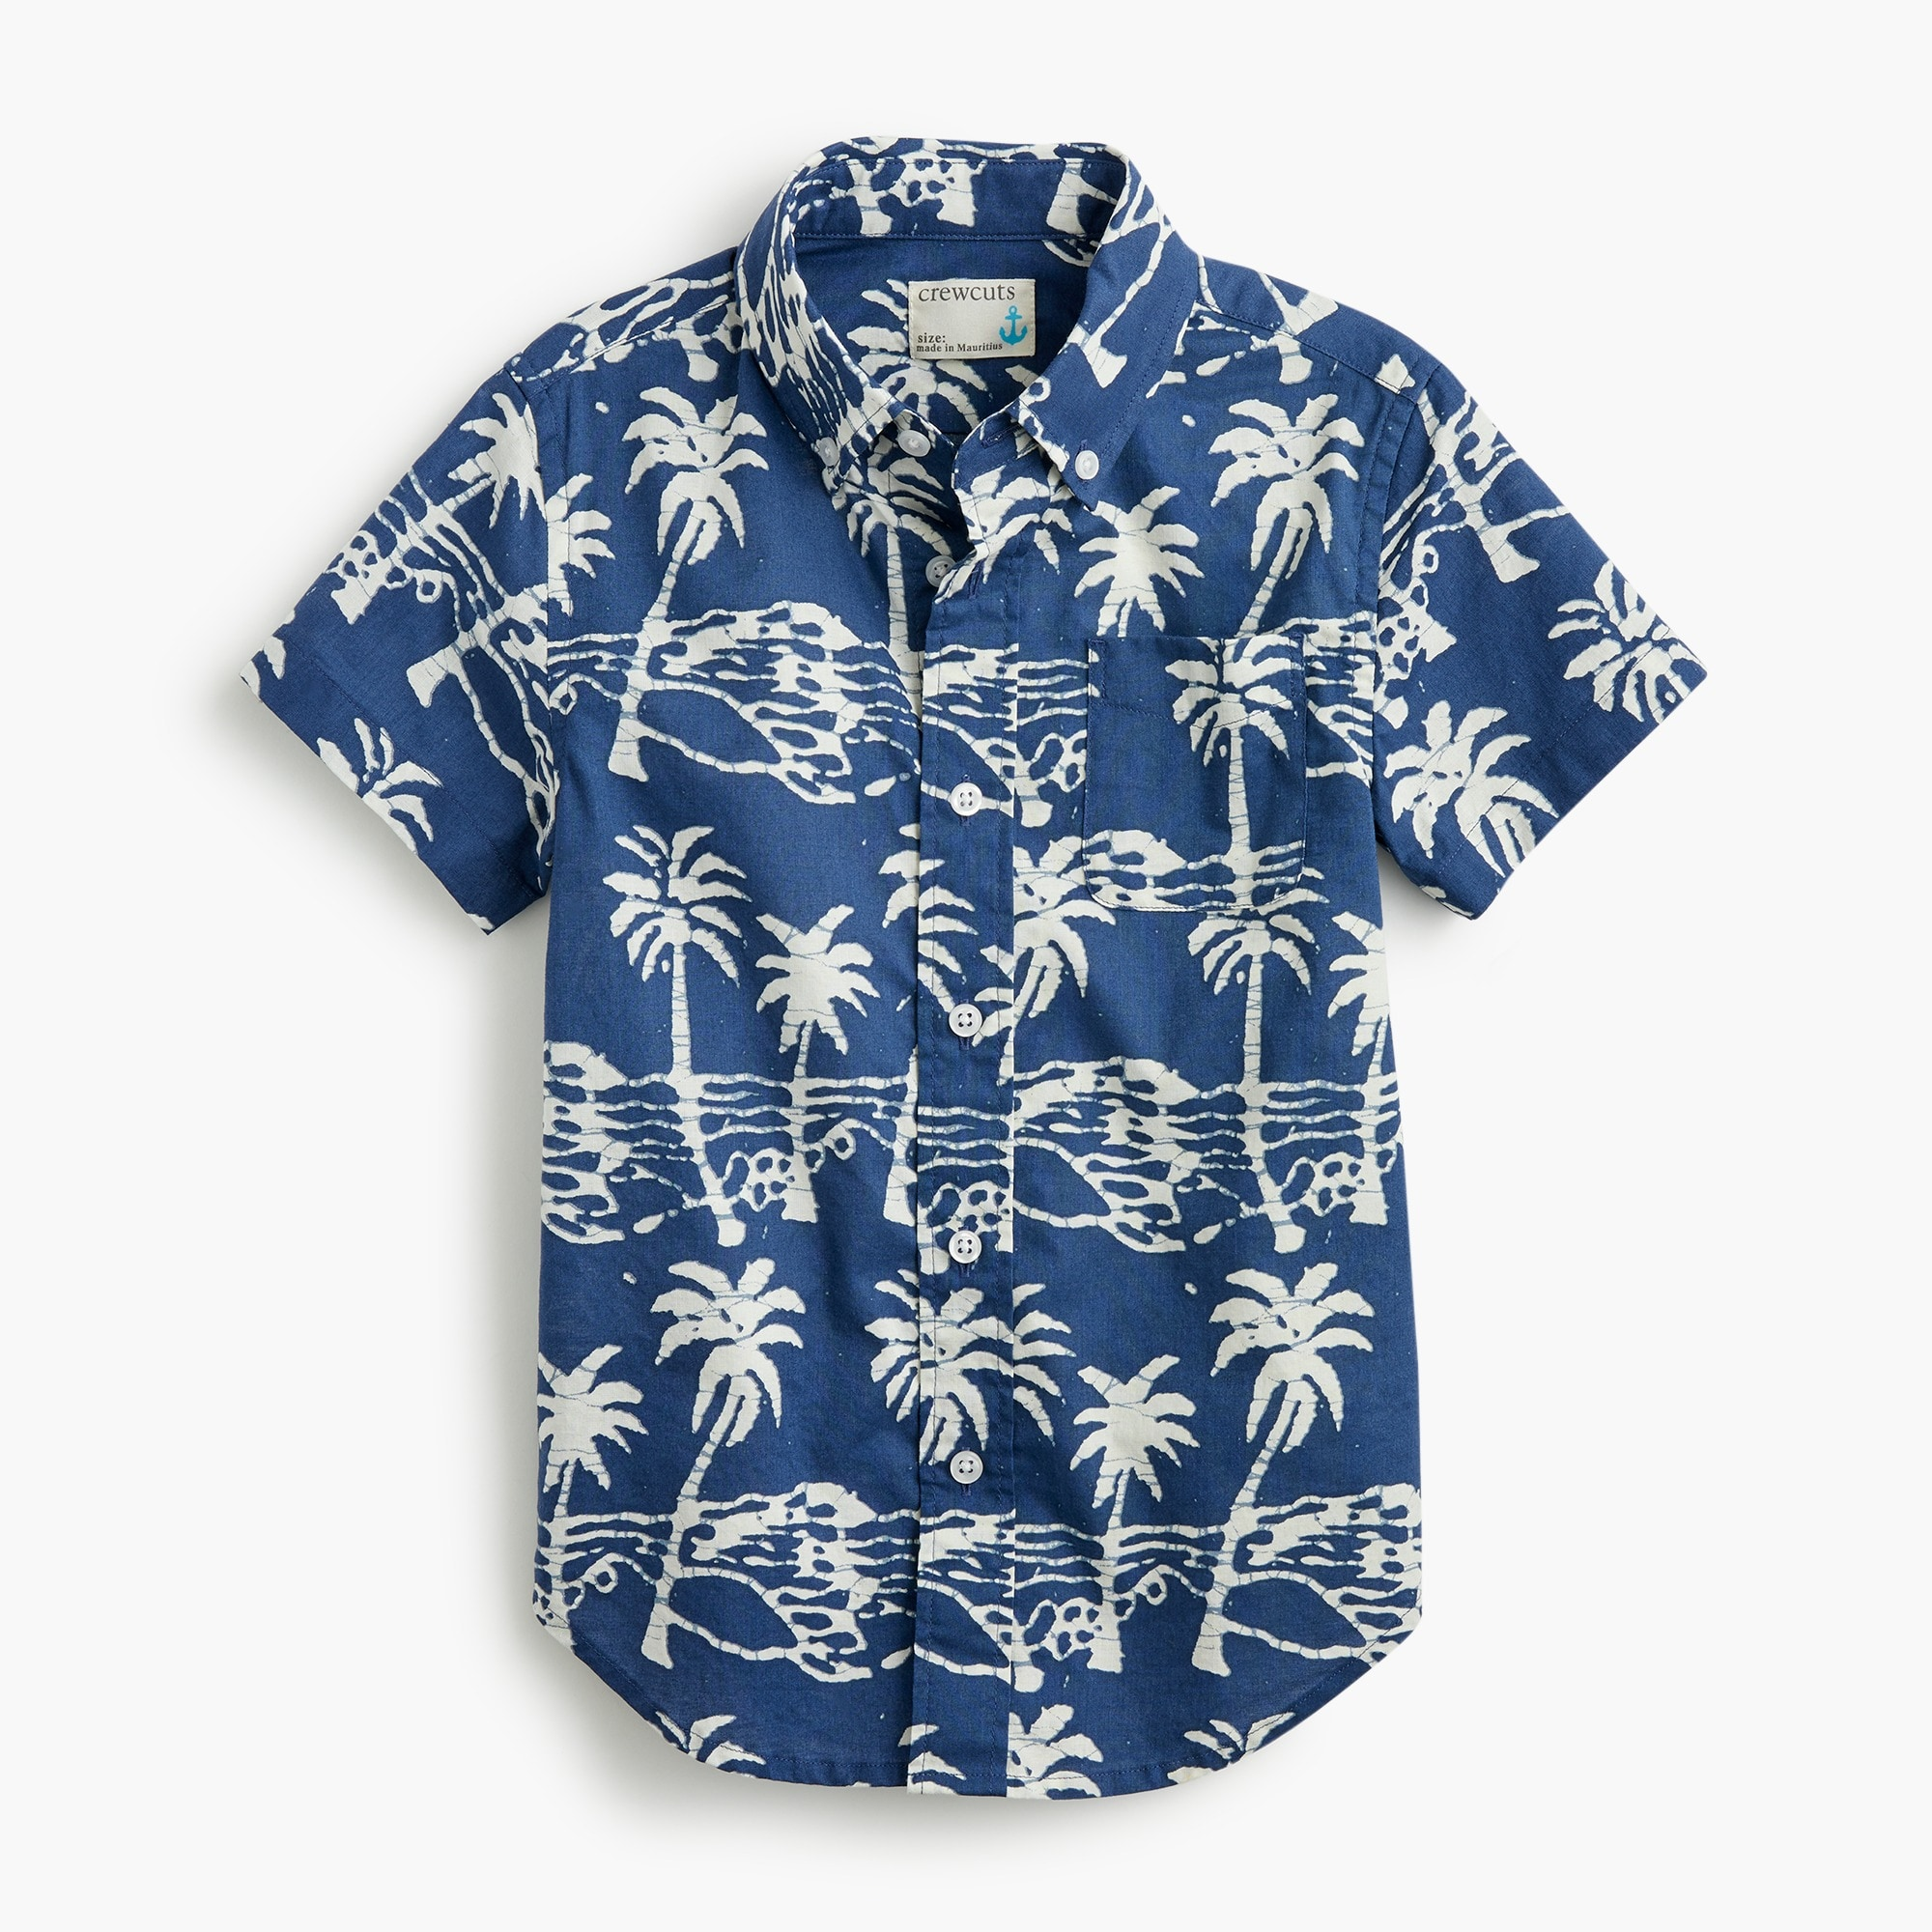 Boys' Secret Wash shirt in palm print